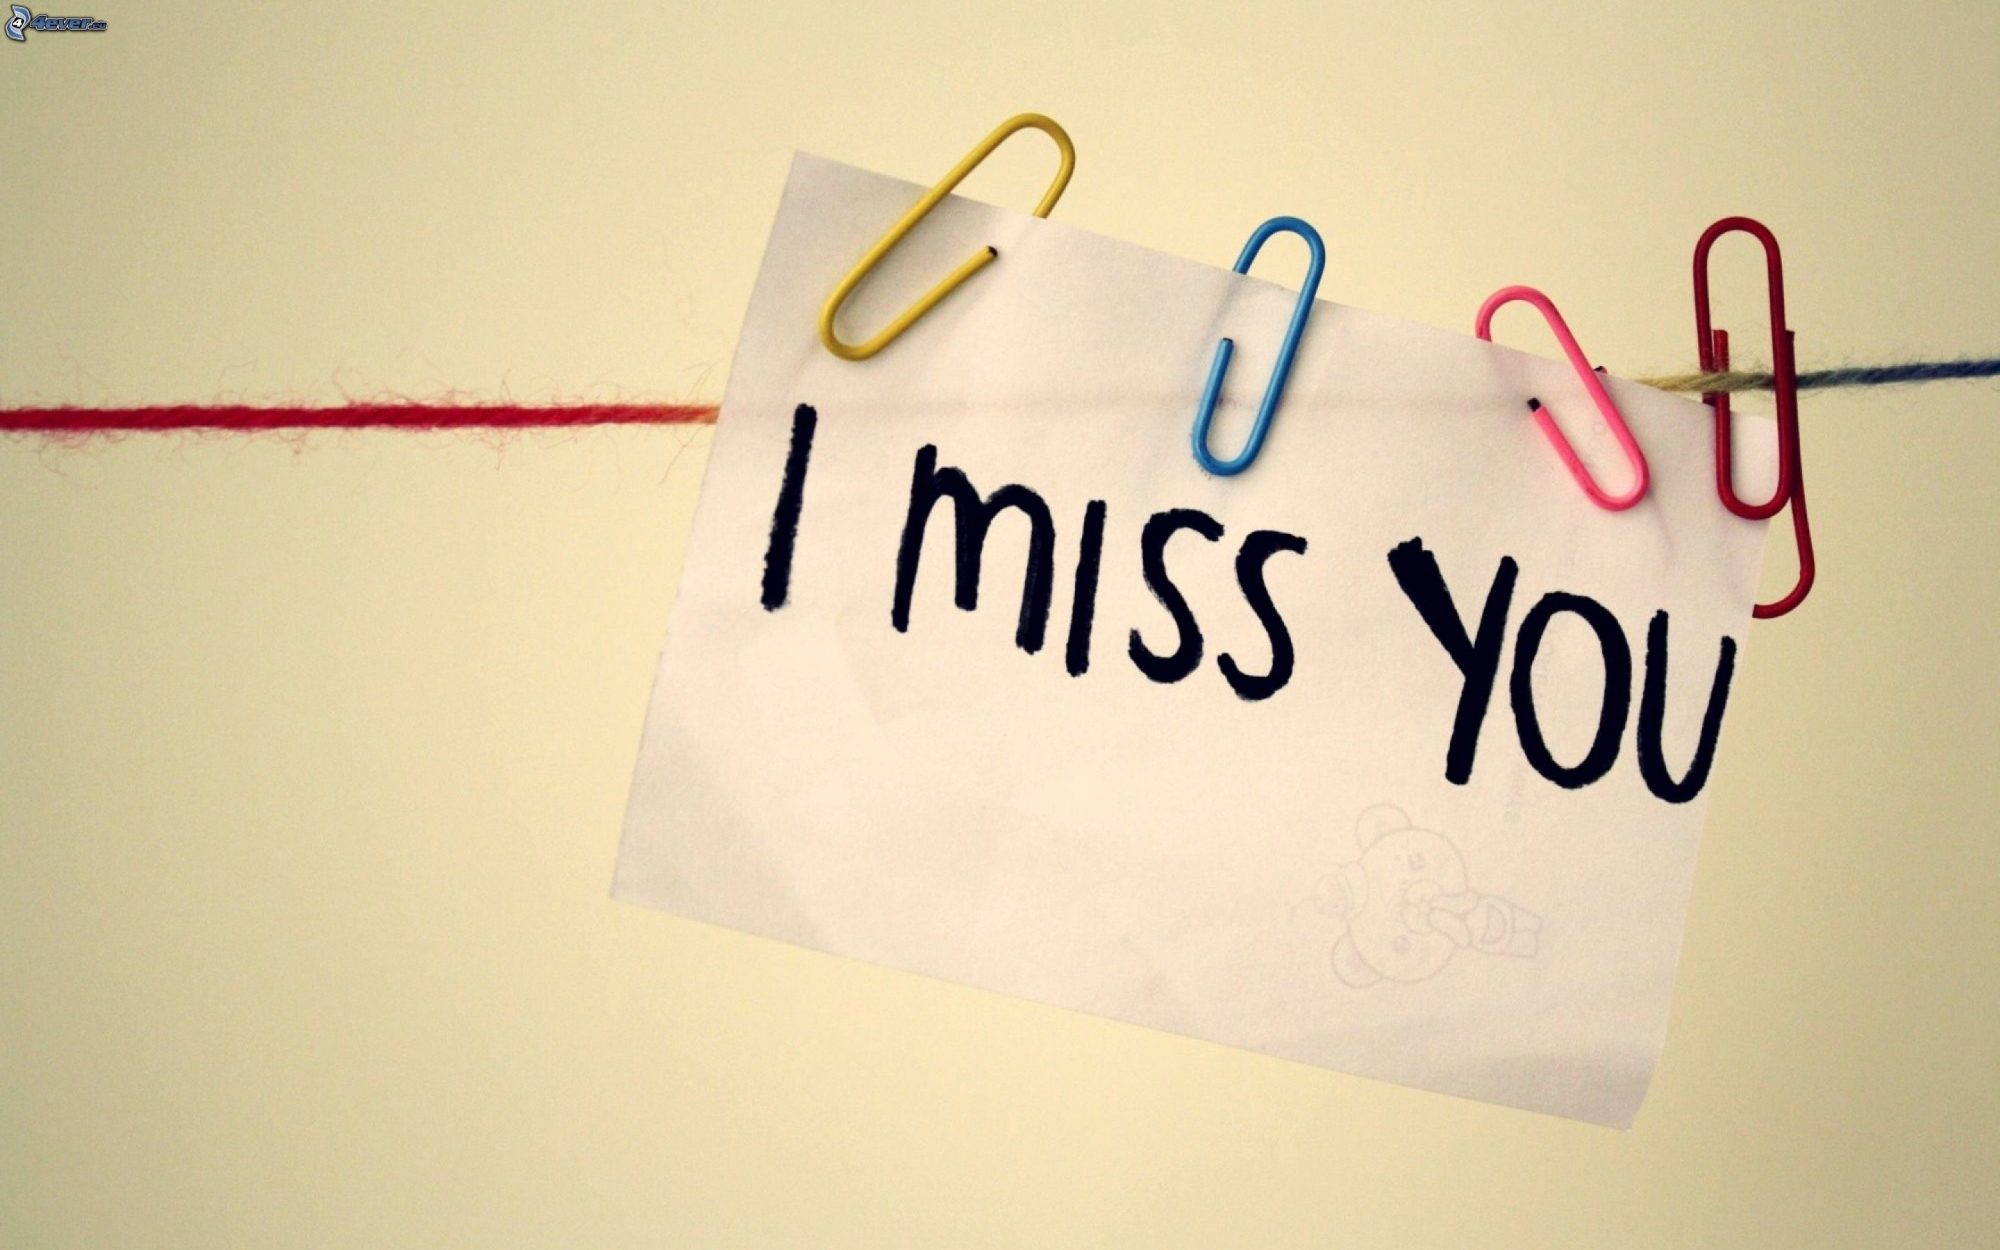 5-cau-noi-tieng-anh-thay-tu-i-miss-you